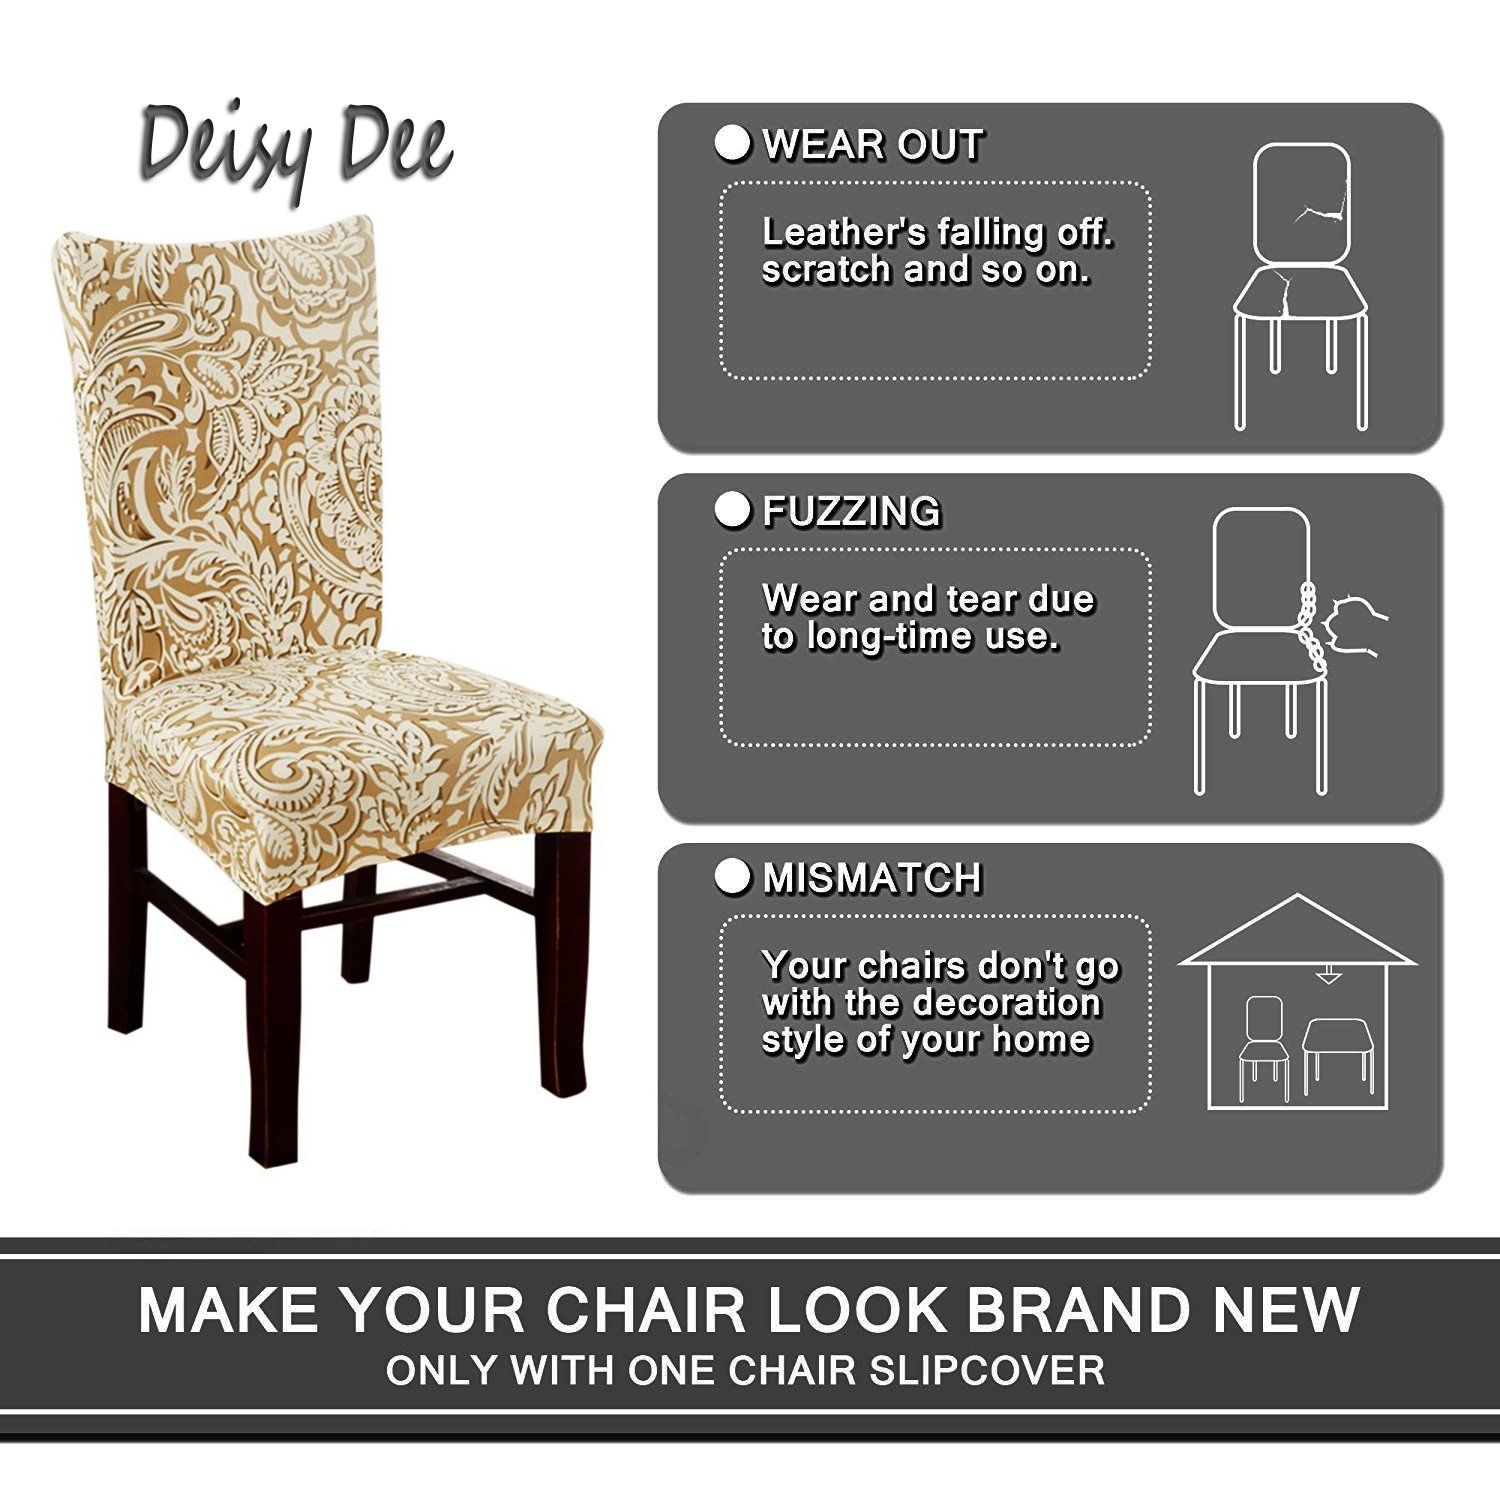 Deisy Dee Stretch Chair Cover Removable Washable for Hotel Dining Room Ceremony Chair Slipcovers Pack of 6 (D) by Deisy Dee (Image #3)